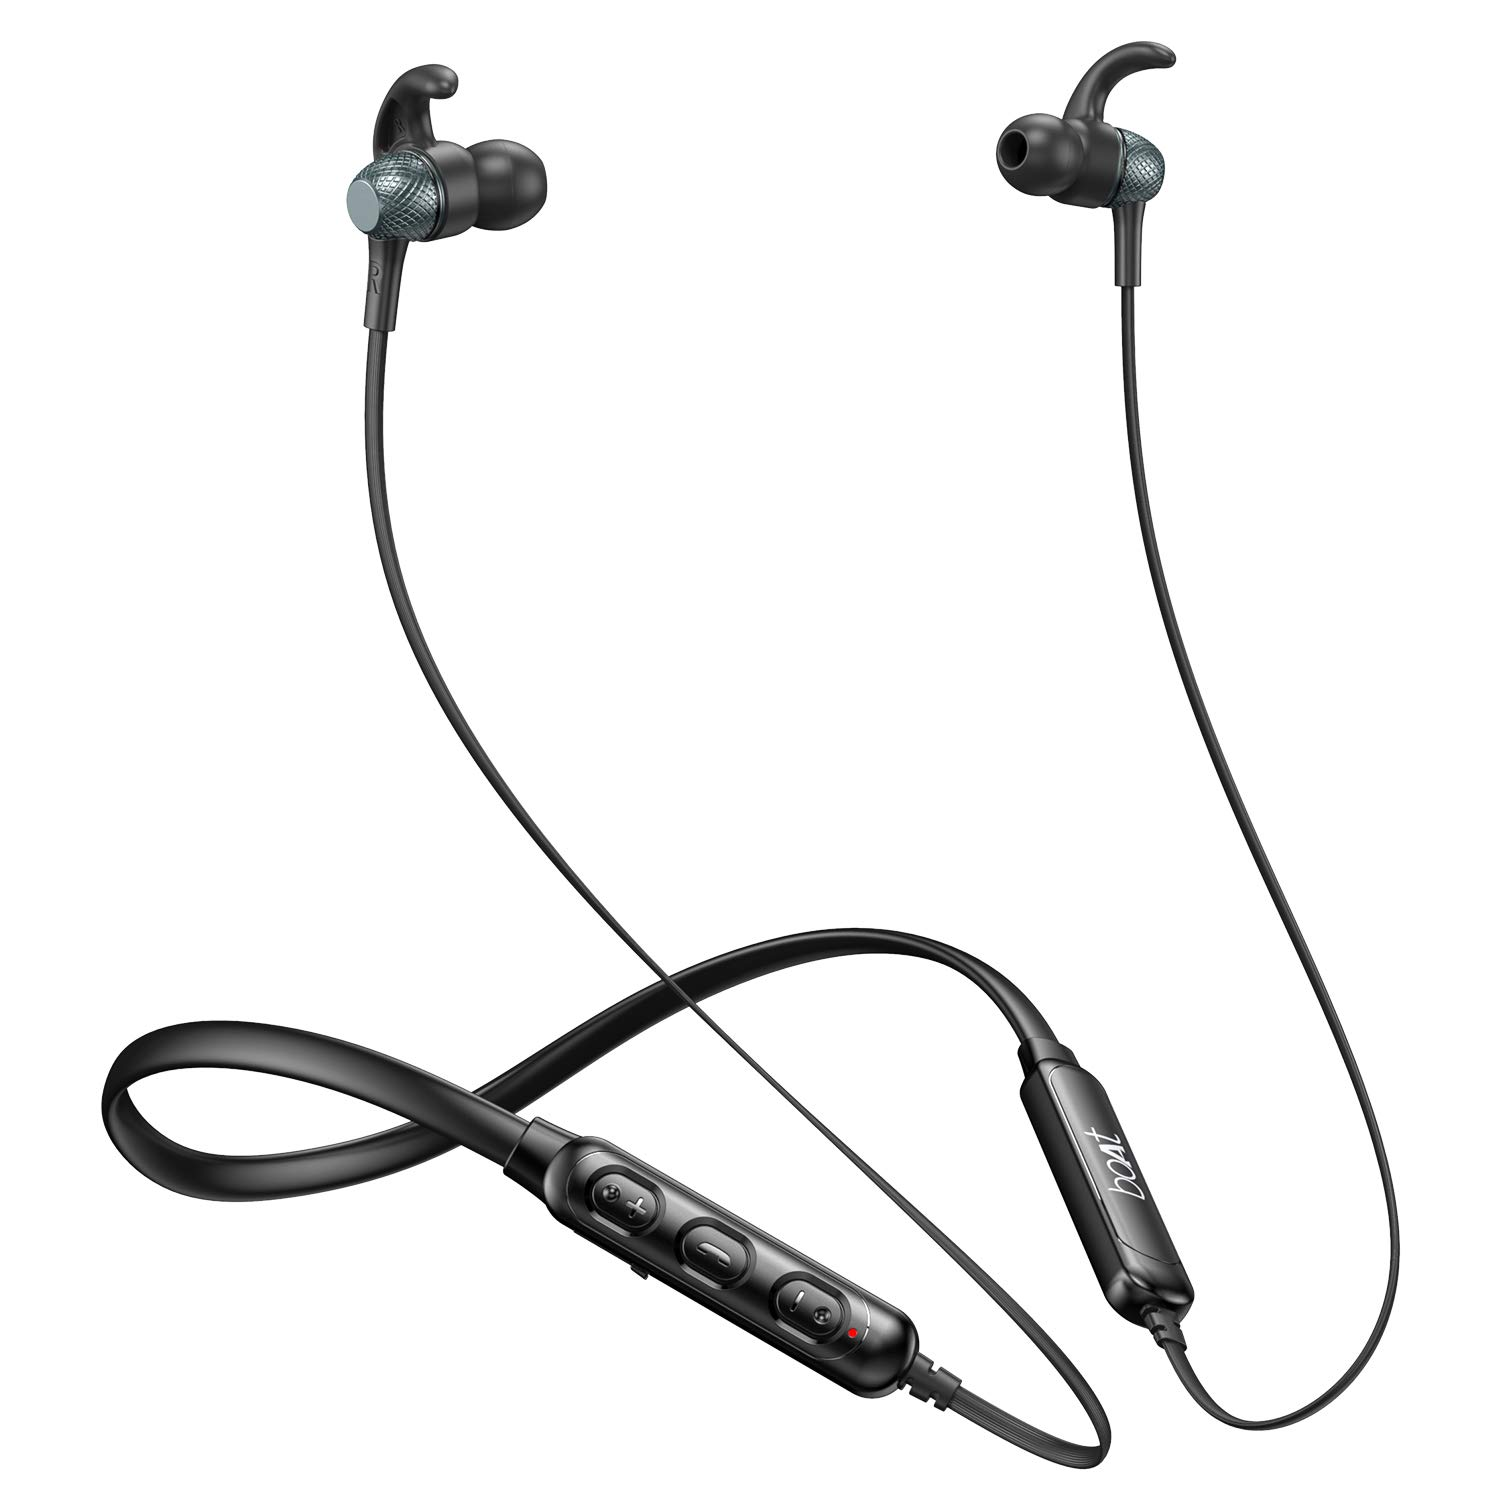 Boat 225 Wireless Earphone With Integrated Controls Amazon In Electronics